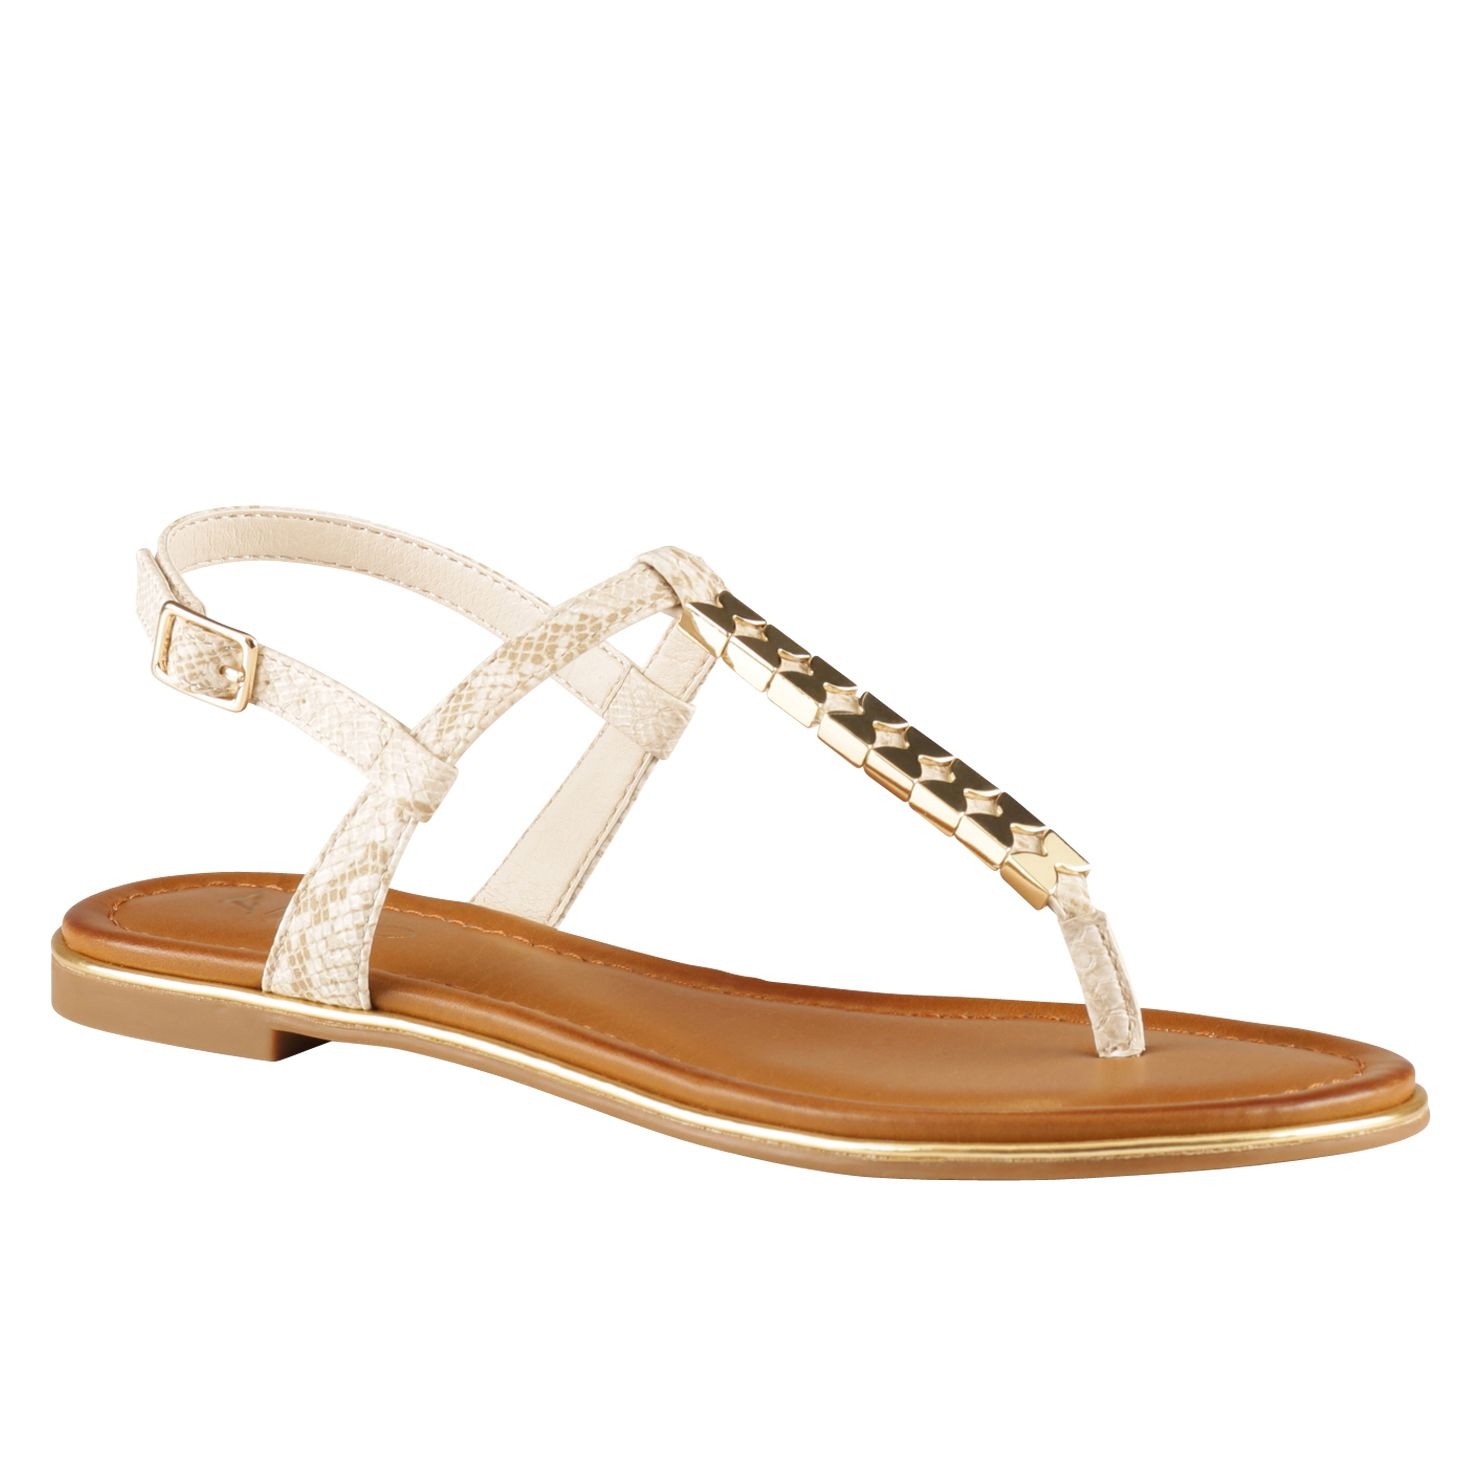 Aldo Womens Shoes Sandals Snocure Com